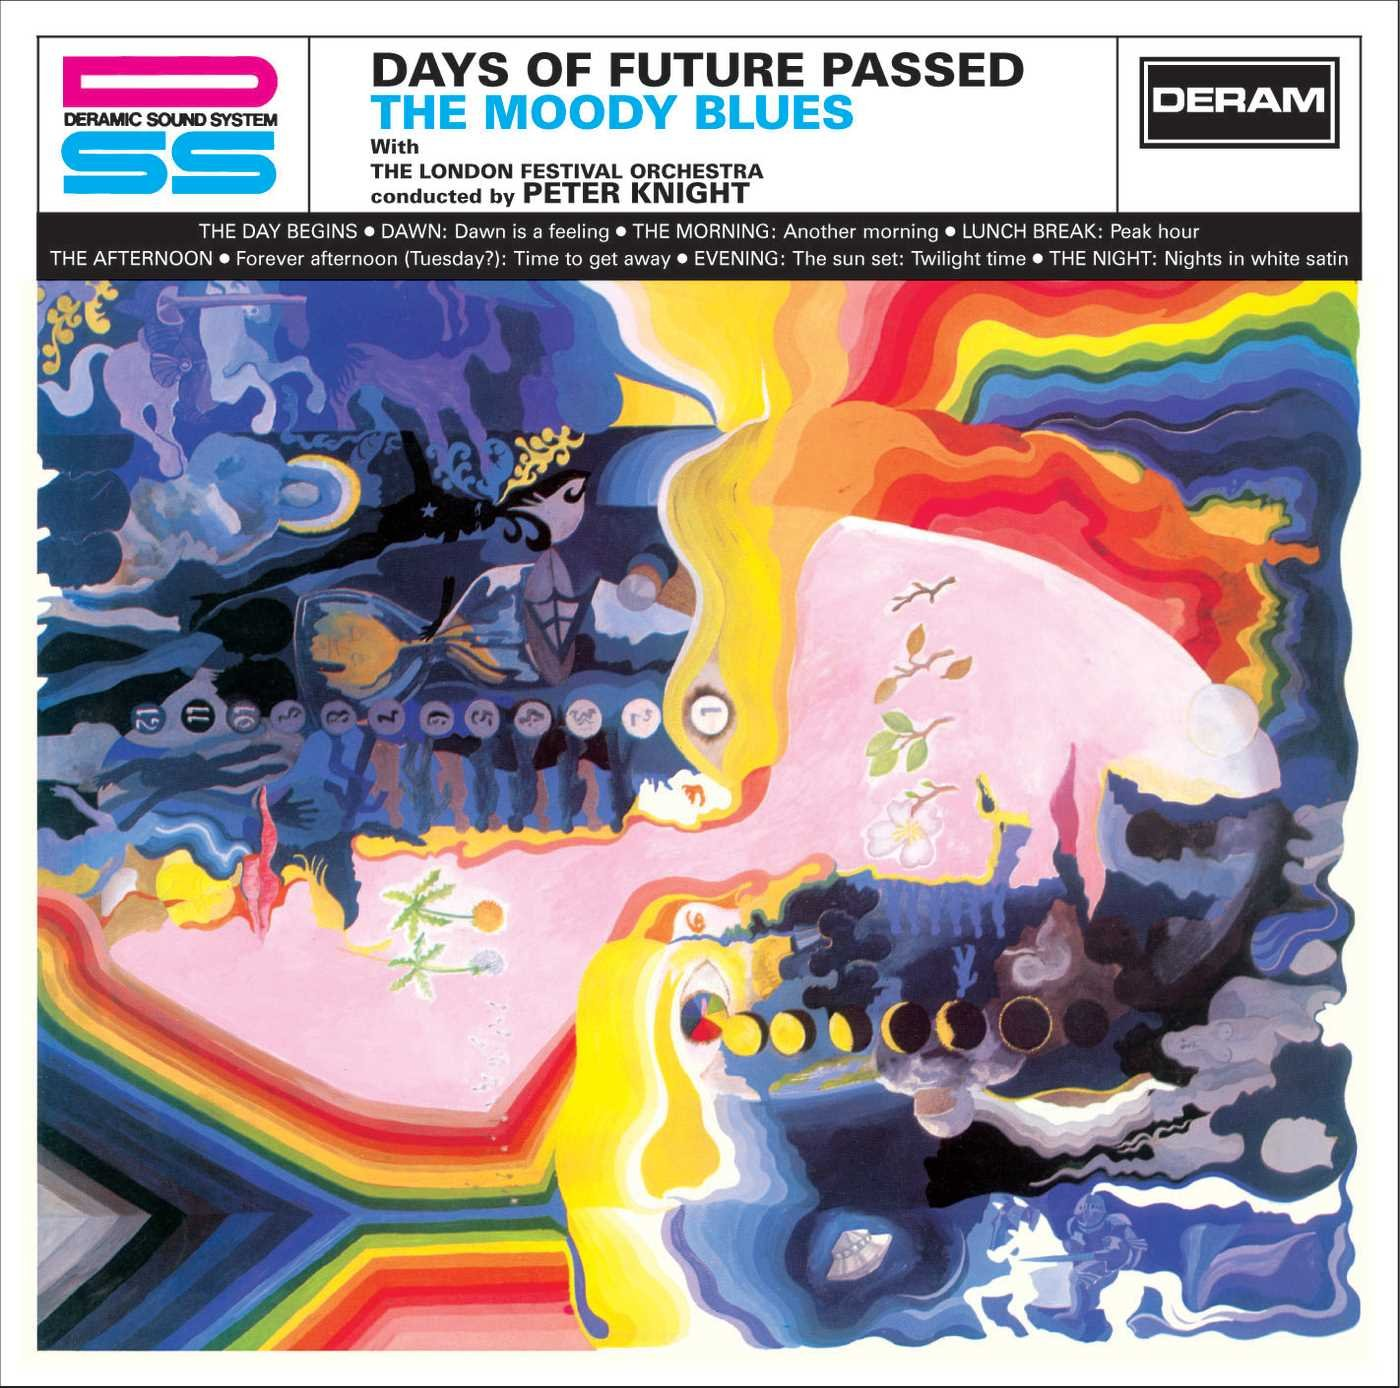 Days Of Future Passed by Polydor / Umgd